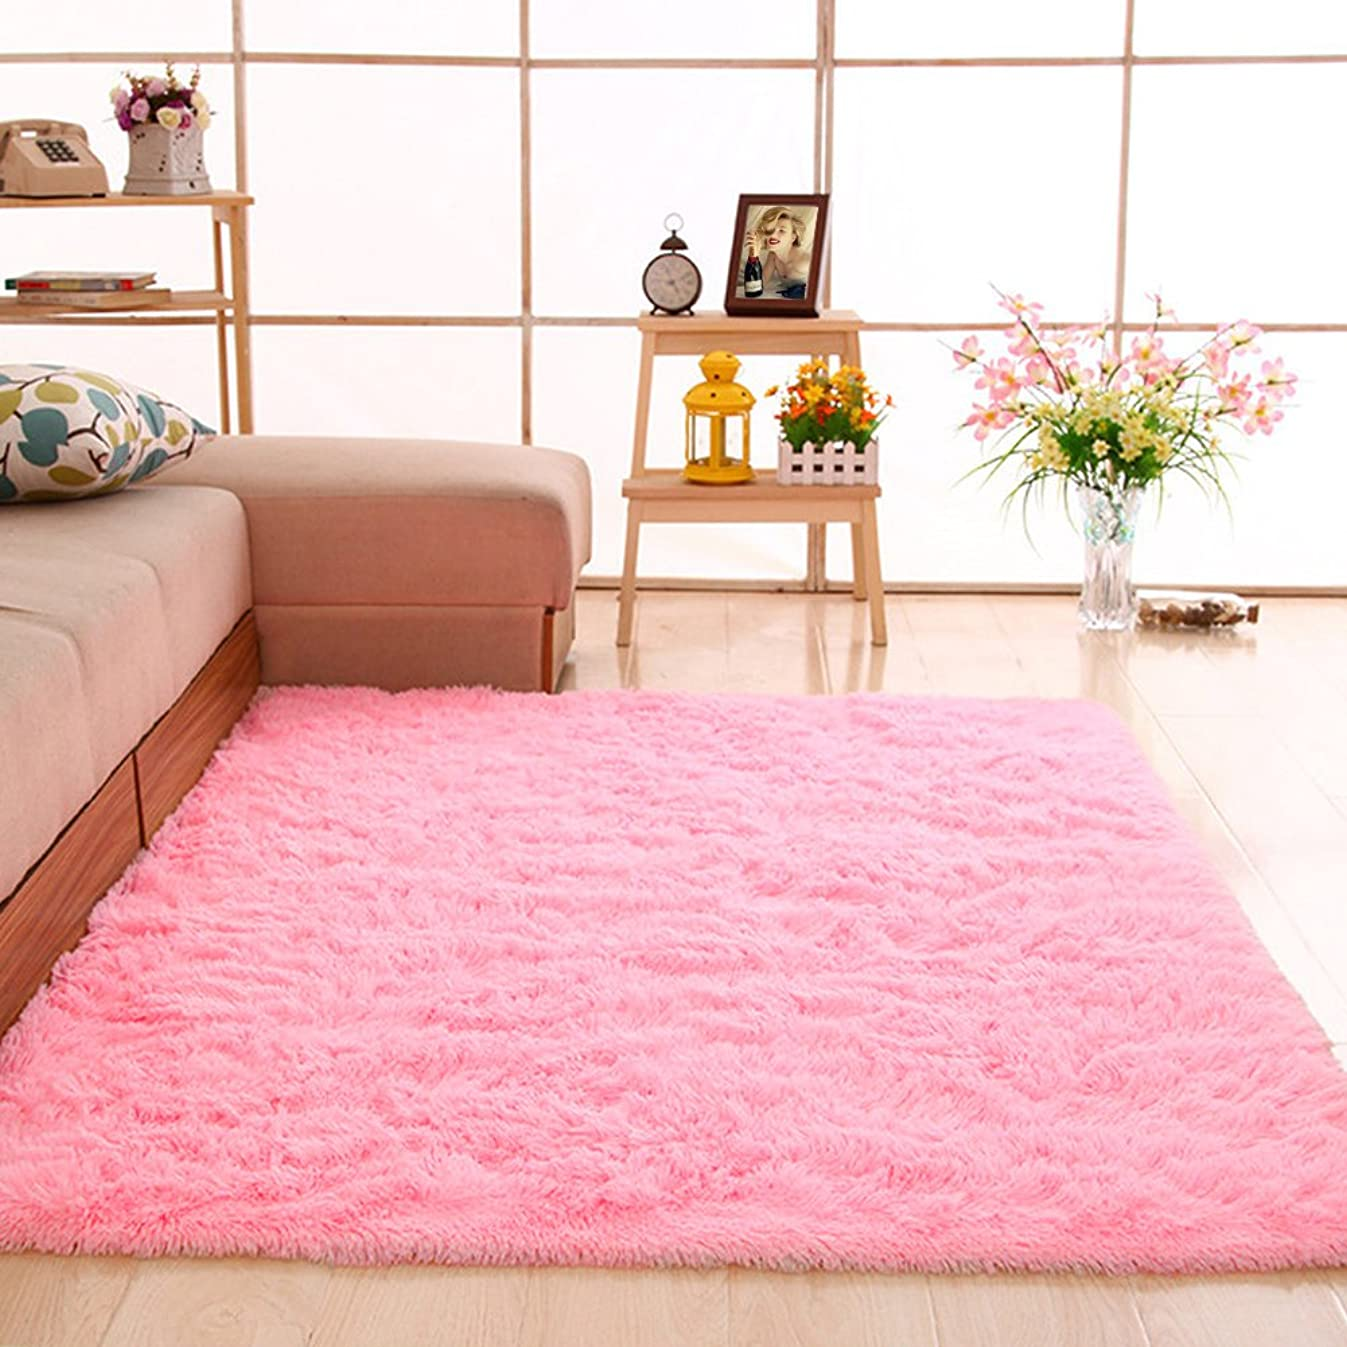 gdmgdr Ultra Soft and Fluffy Nursery Rugs 4cm High Pile Area Rugs for Bedroom and Living Room 4' x 5.3', Pink